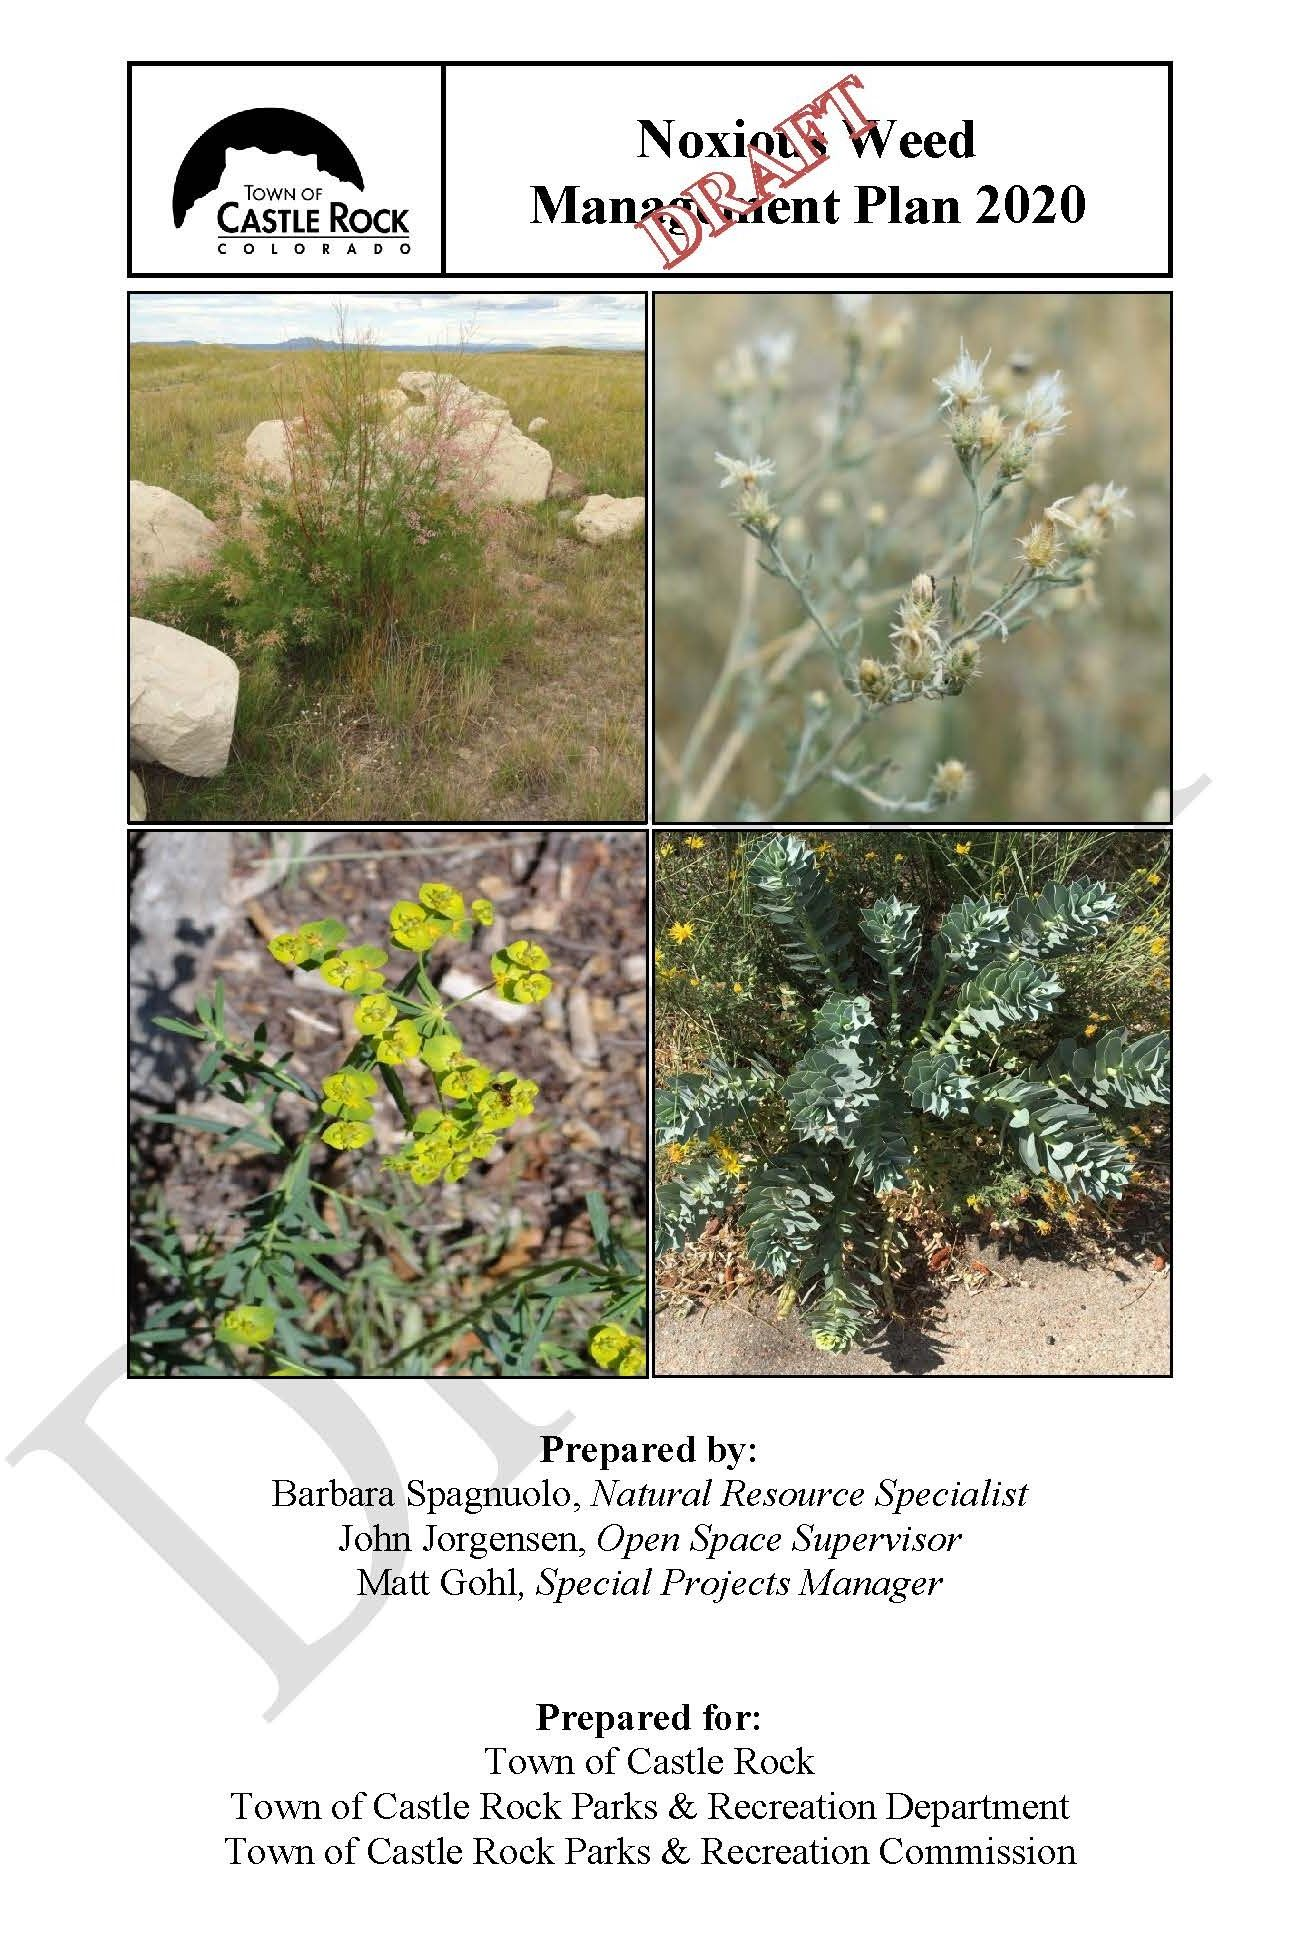 Noxious Weed Management Plan draft front cover